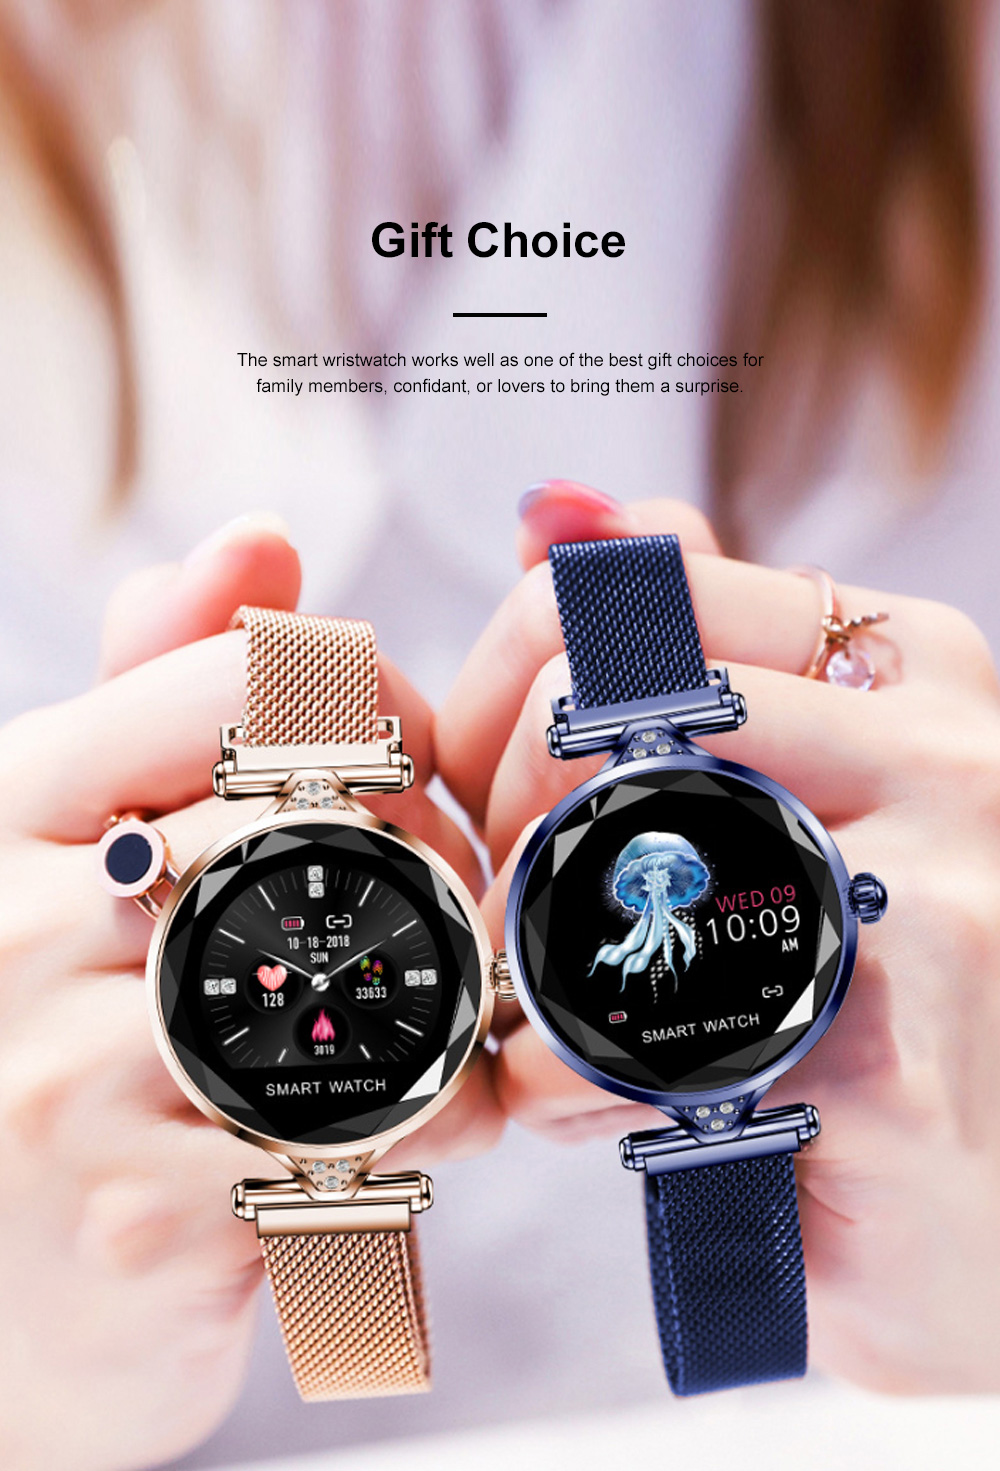 Multifunctional Smart Wrist Watch for Women Daily Wear Fashionable and Smart Bracelet Bluetooth Colorful Screen Wristwatch 4